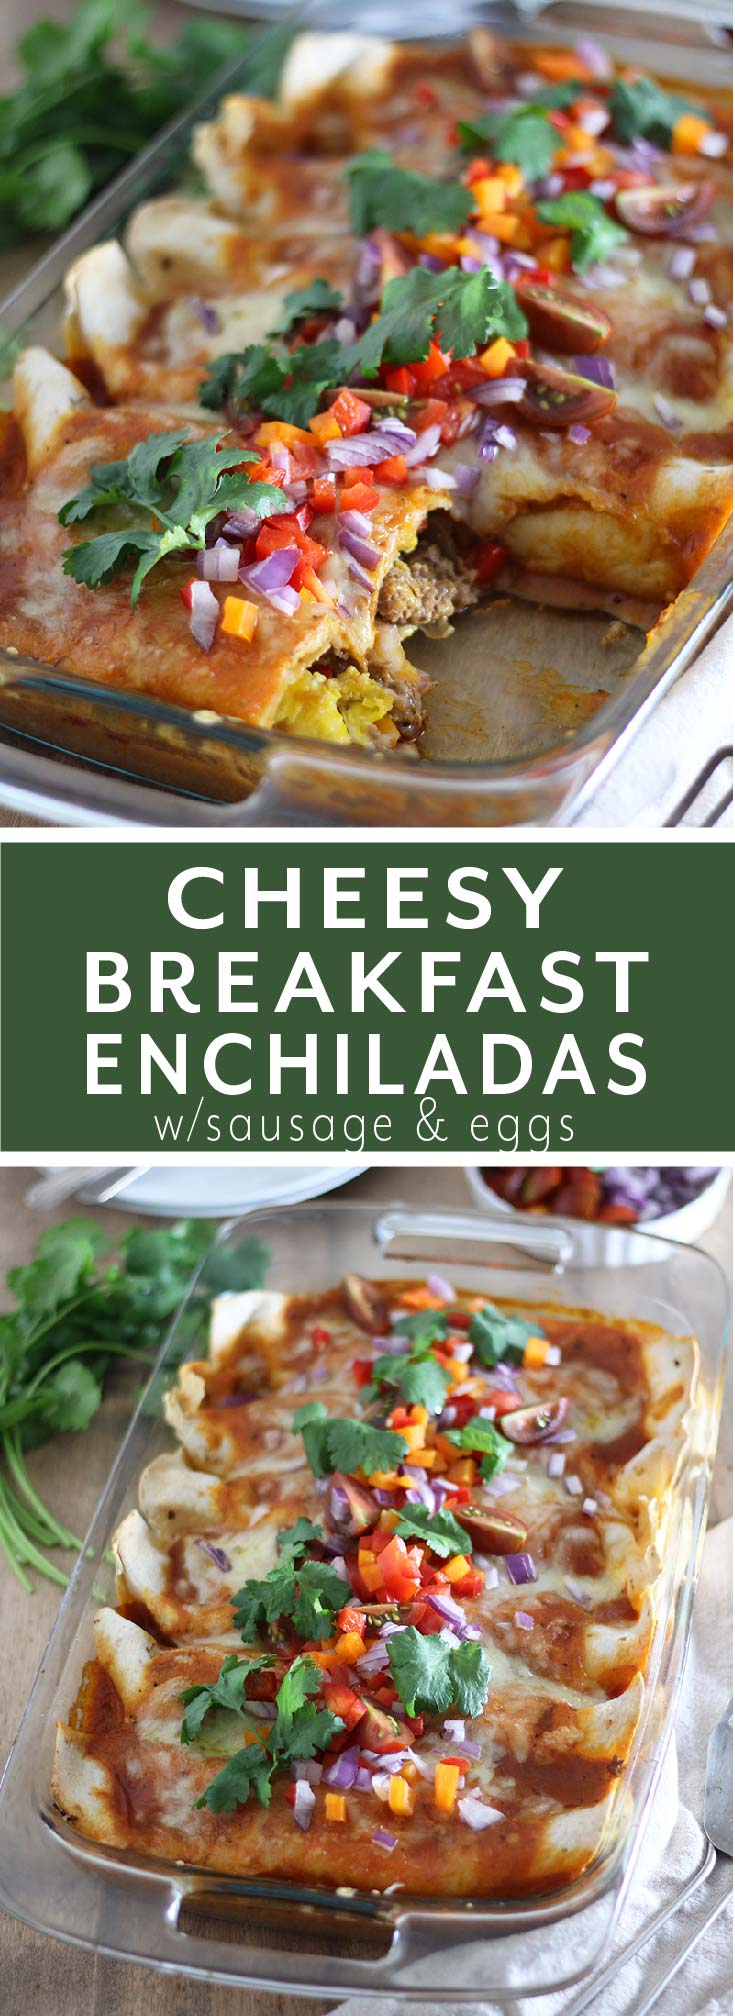 Saucy breakfast enchiladas filled with sautéed peppers and onion, sausage, scrambled eggs and lots of cheese. An easy and fun twist on breakfast.